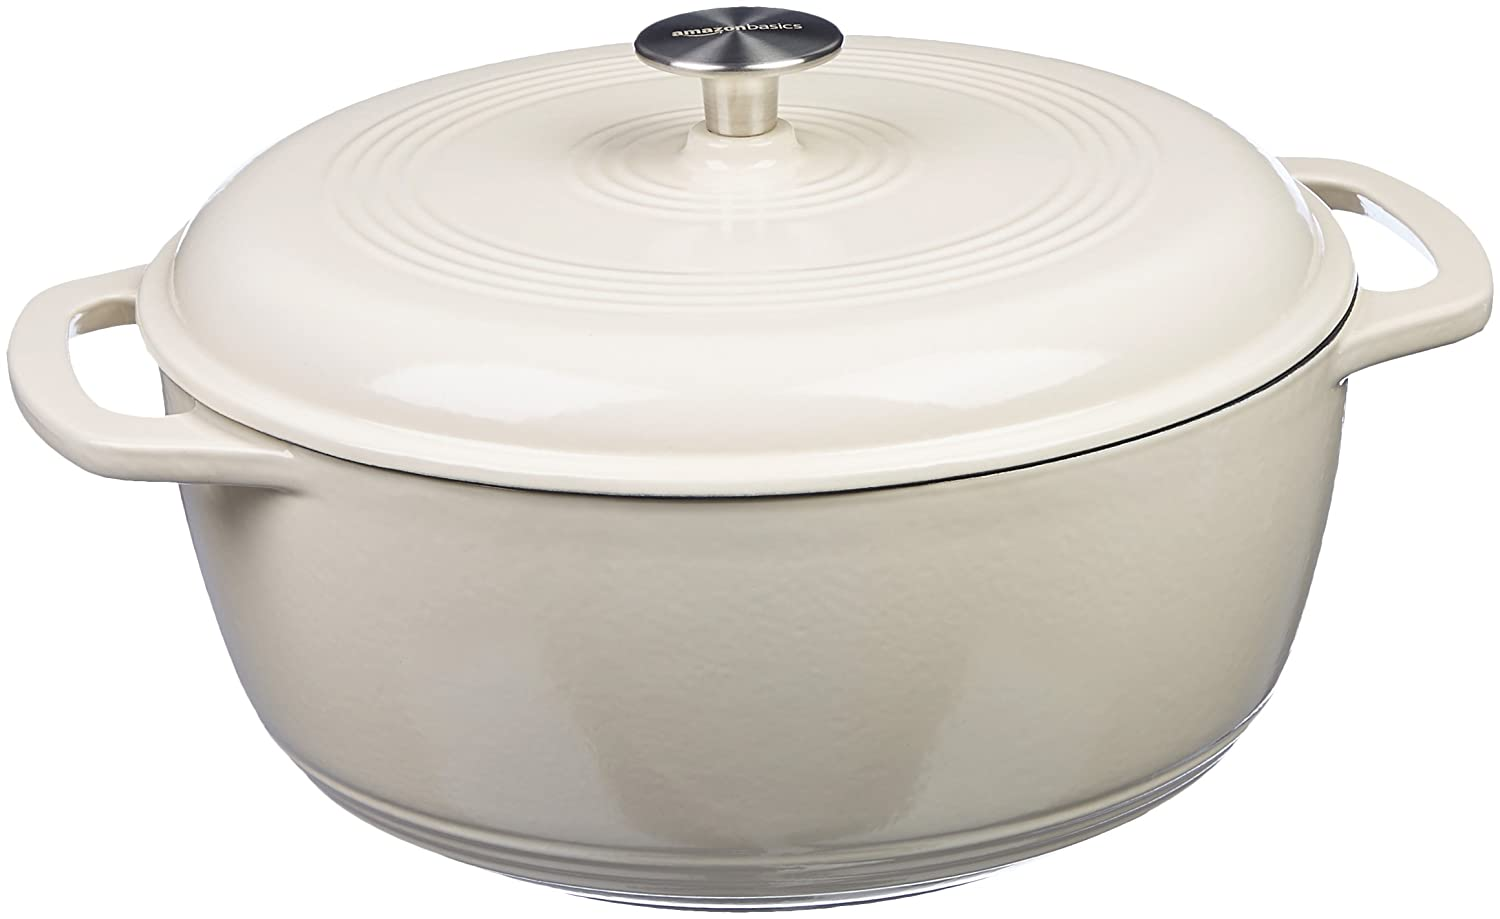 AmazonBasics Enameled Cast Iron Dutch Oven - 4.5-Quart, White